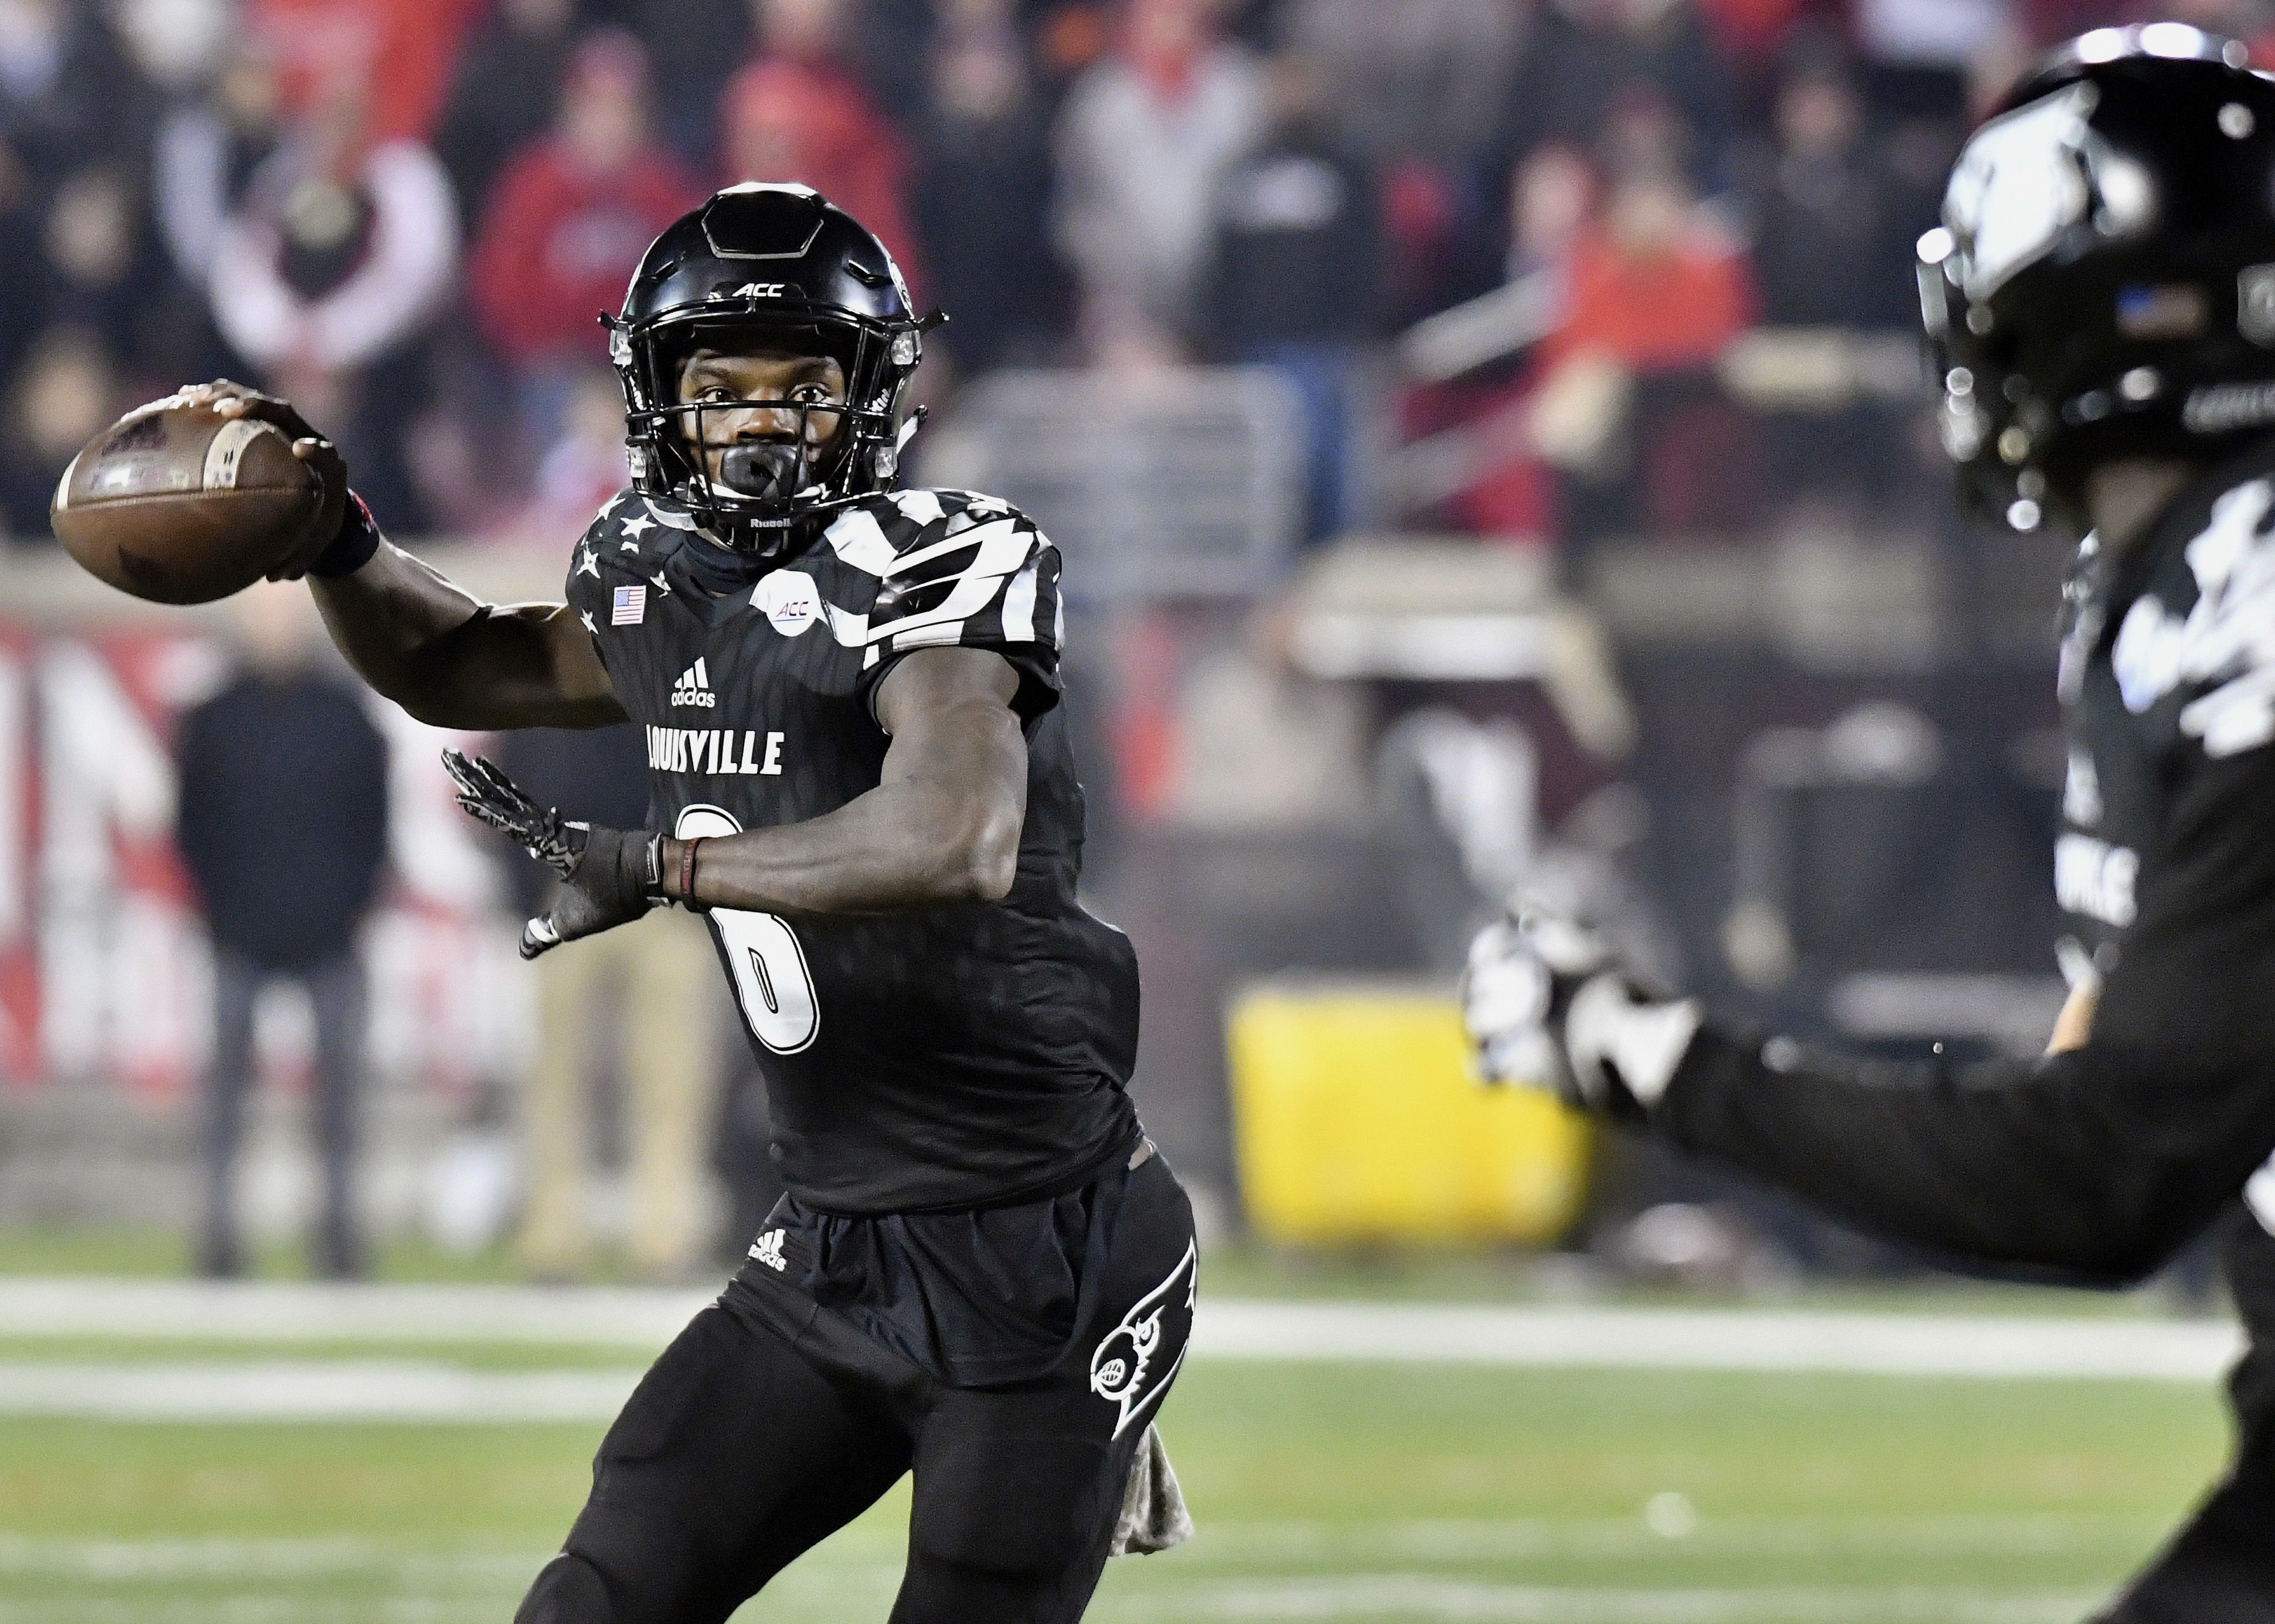 FILE - In this Nov. 12, 2016, file photo, Louisville quarterback Lamar Jackson attempts a pass during the second half of an NCAA college football game against Wake Forest in Louisville Ky. Playing in a bowl game is usually considered to be a reward for a